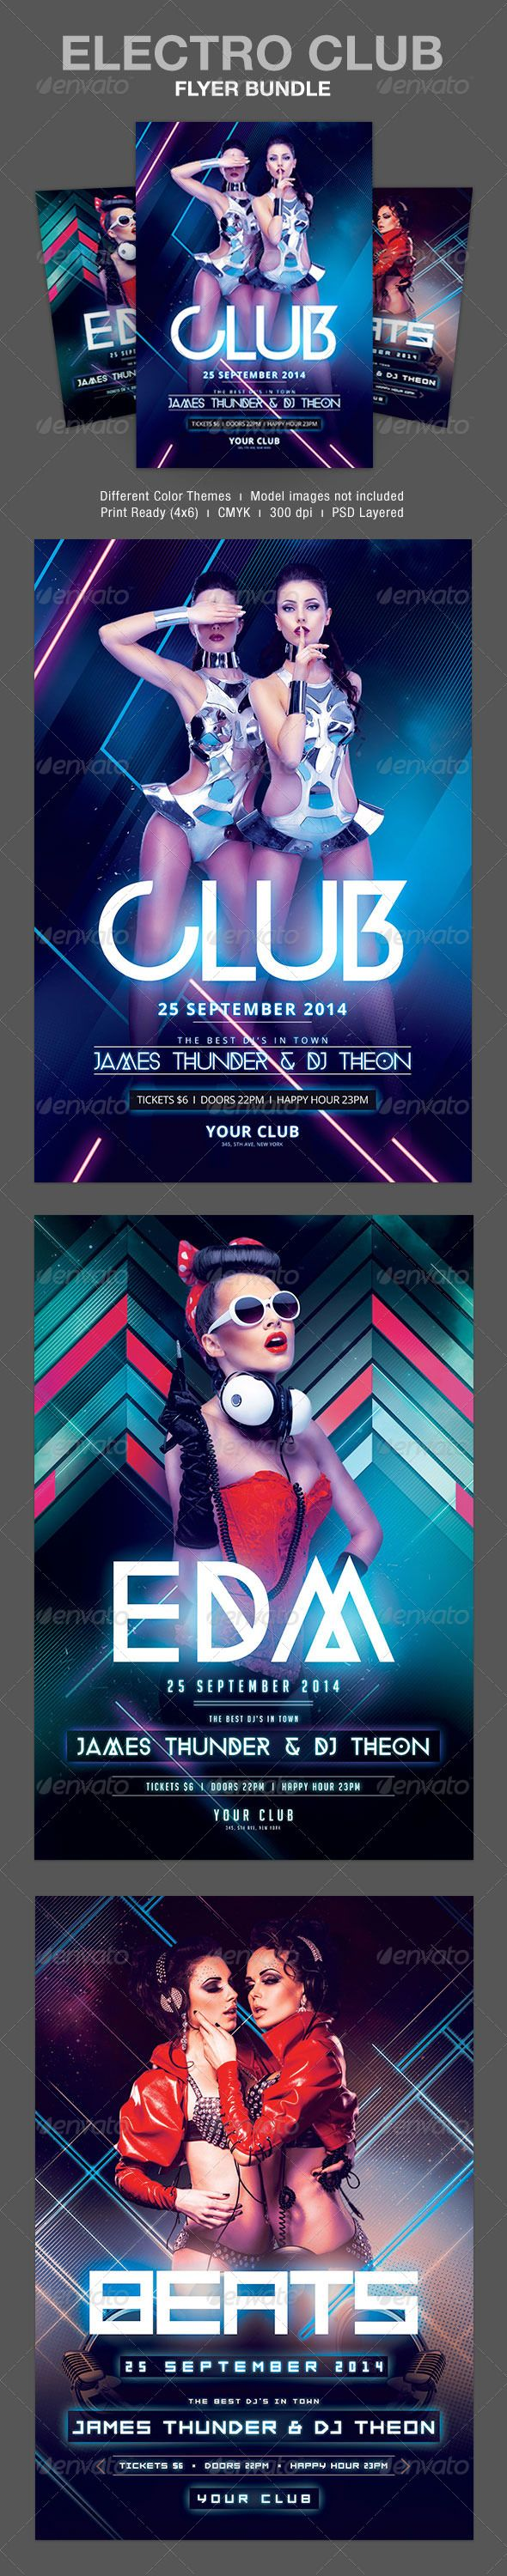 Electro Club Flyer Bundle Electro flyer, blue, bundle, clean, club, clubbing, cool, electro, event, flyer, flyer bundle, fresh, glow, glowing, house, light, line, minimal, modern, neon, night, nightclub, party, party flyer, poster, print, psd, pure, templ